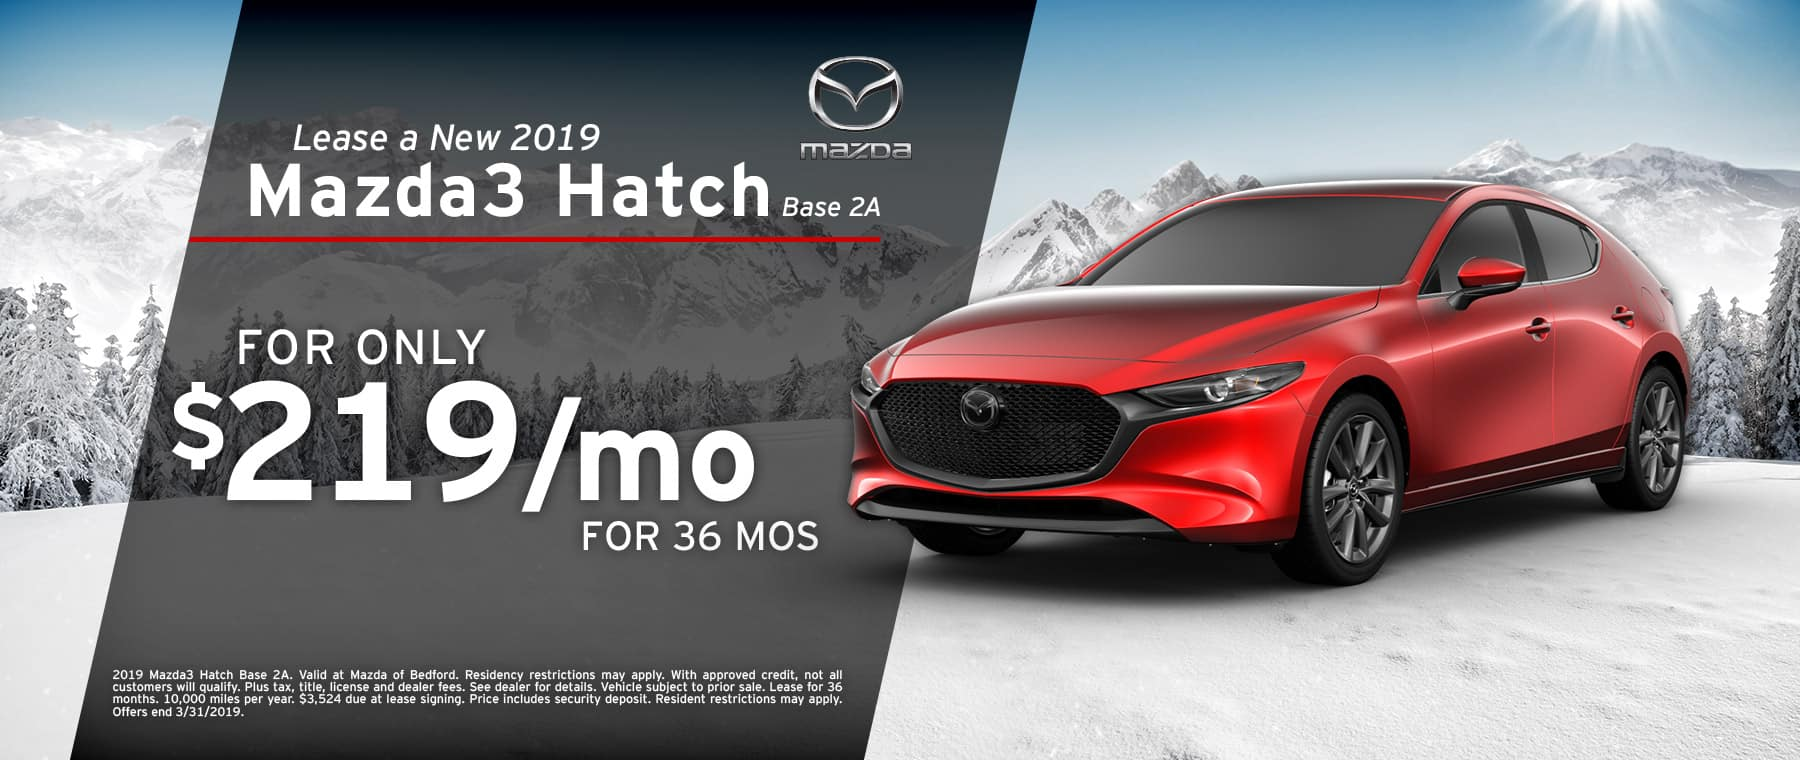 Save when you lease a 2019 Mazda3 Hatchback at Mazda of Bedford in Ohio